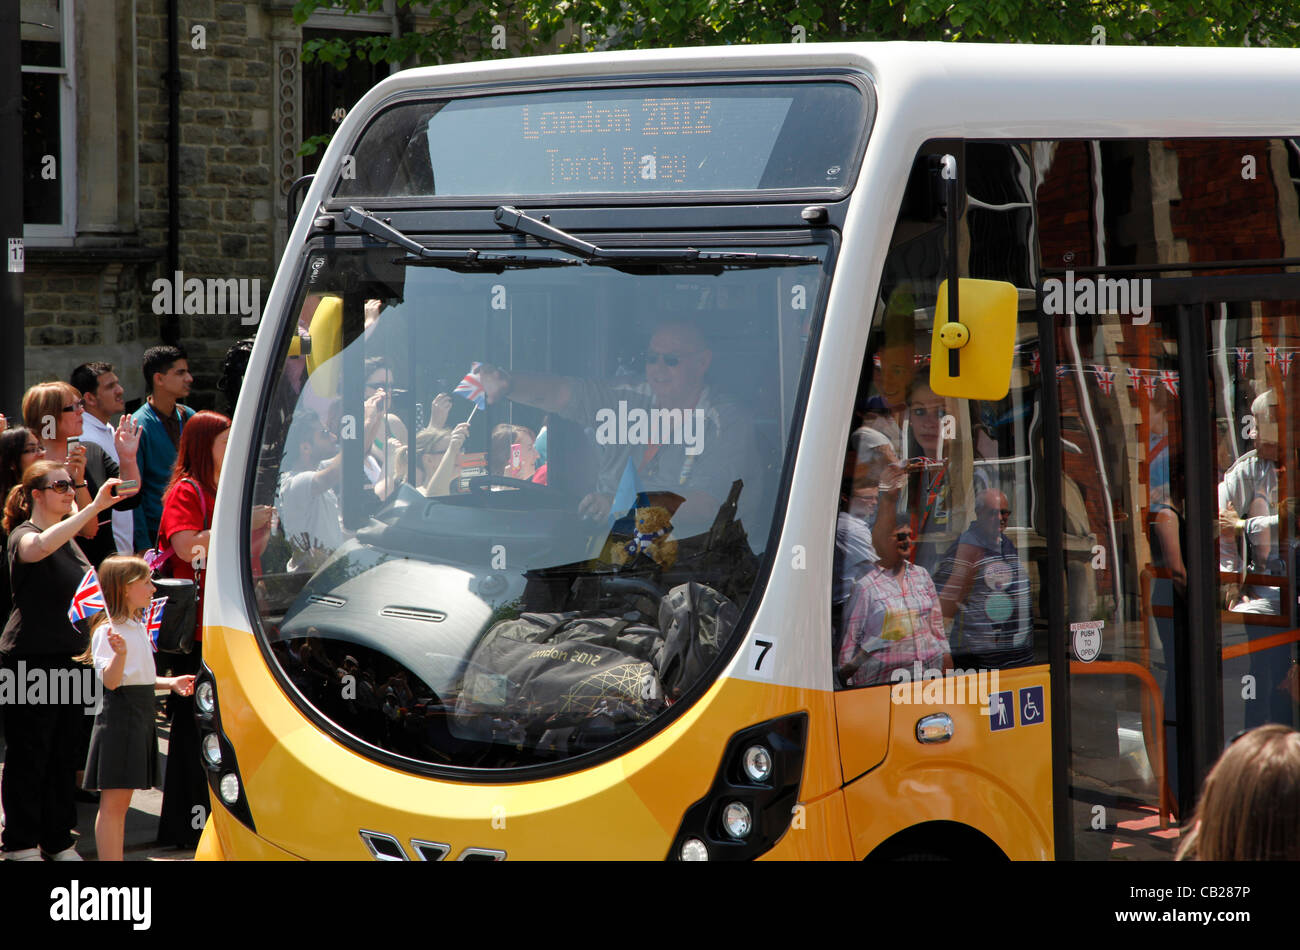 Wednesday, May 23rd 2012.  Swindon, Wiltshire, England, UK. The Olympic Torch Relay coach passes through Bath Road - Stock Image